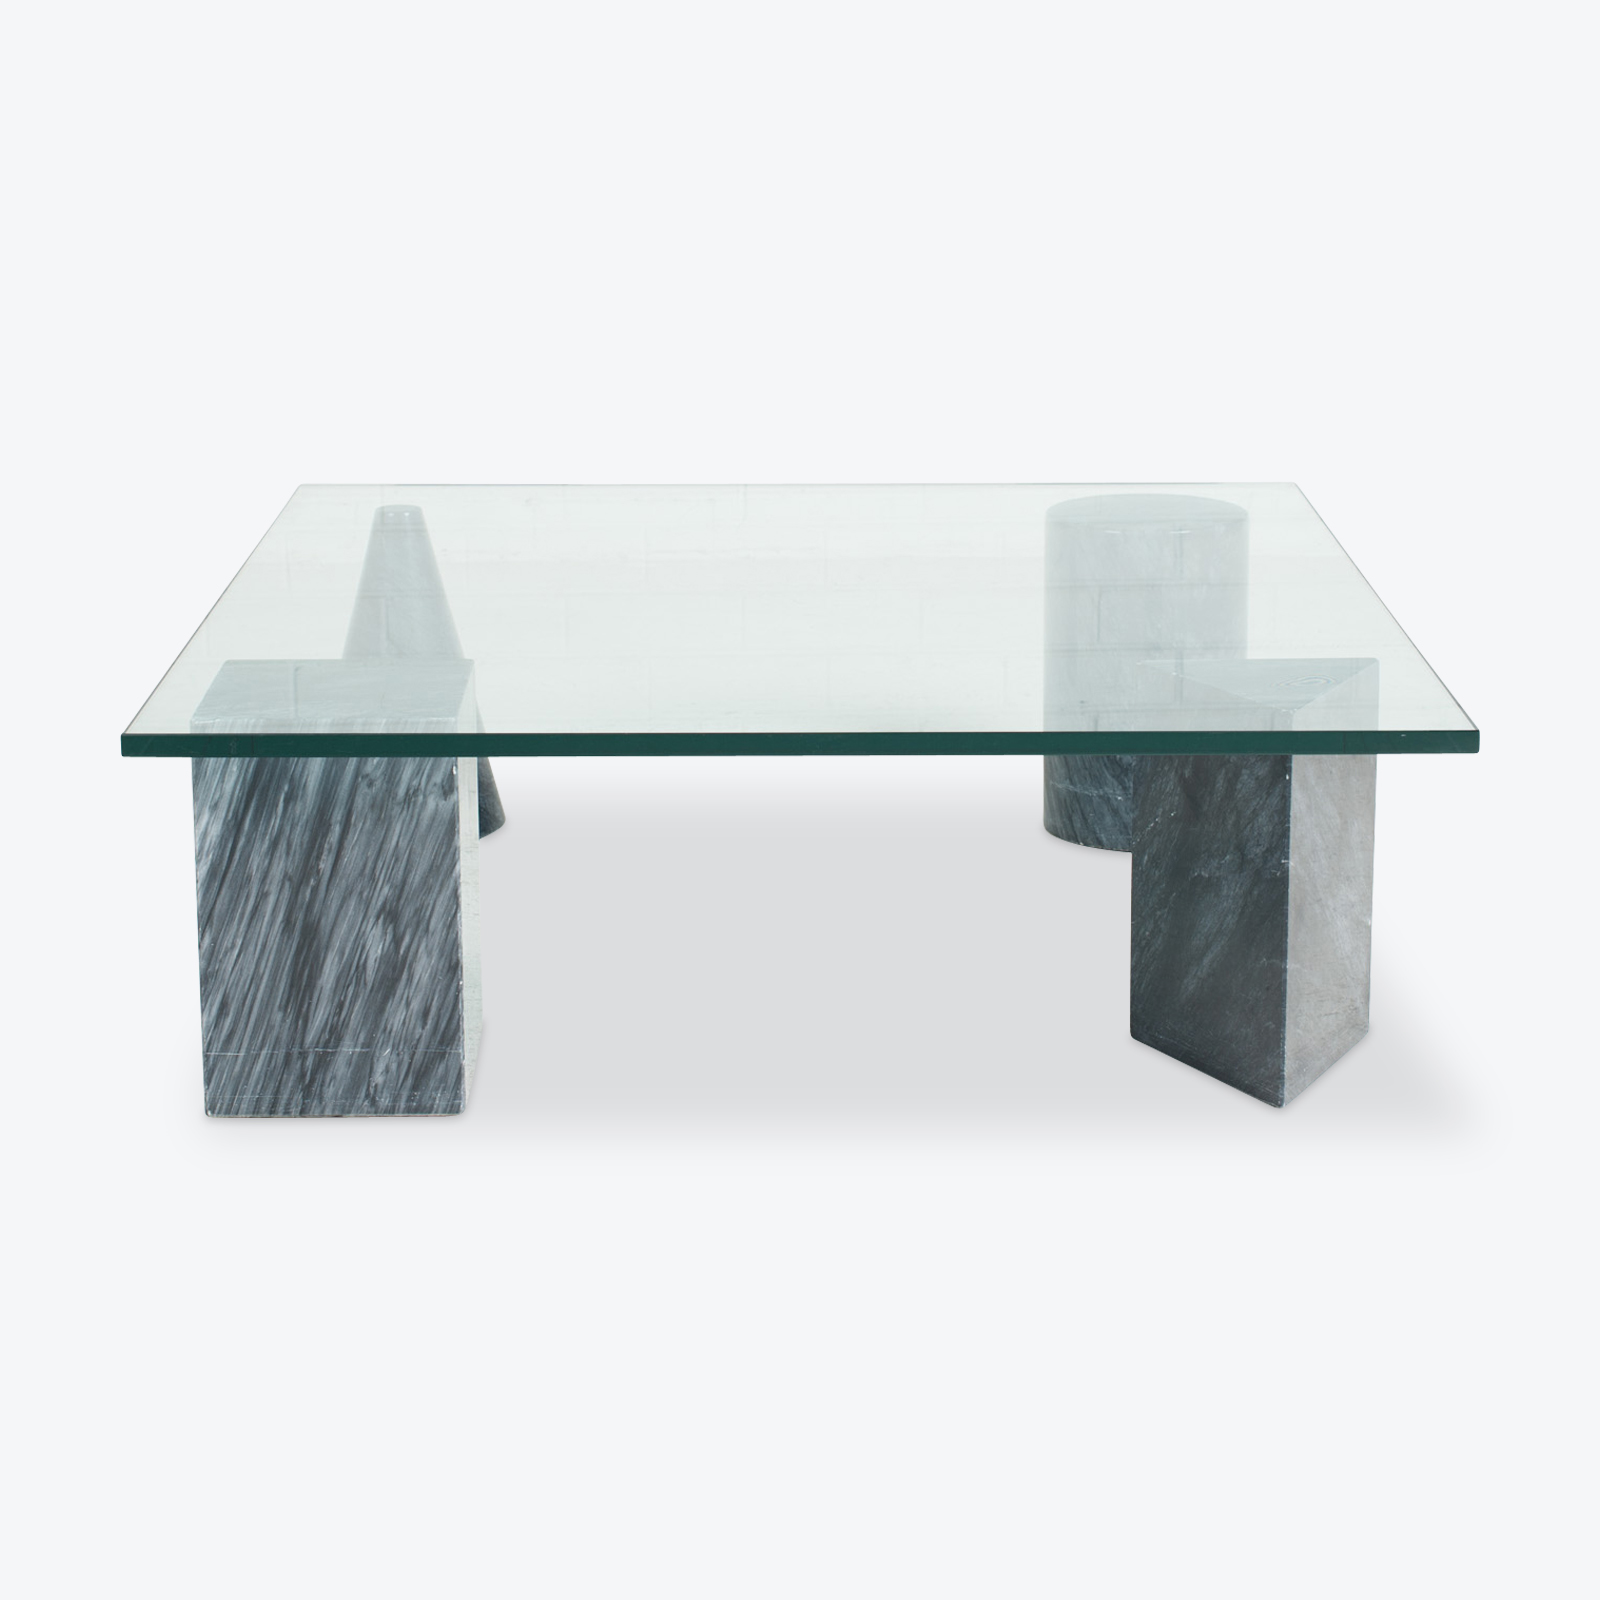 Coffee Table In Glass And Geometric Marble Shapes 1970s Italy 00.jpg